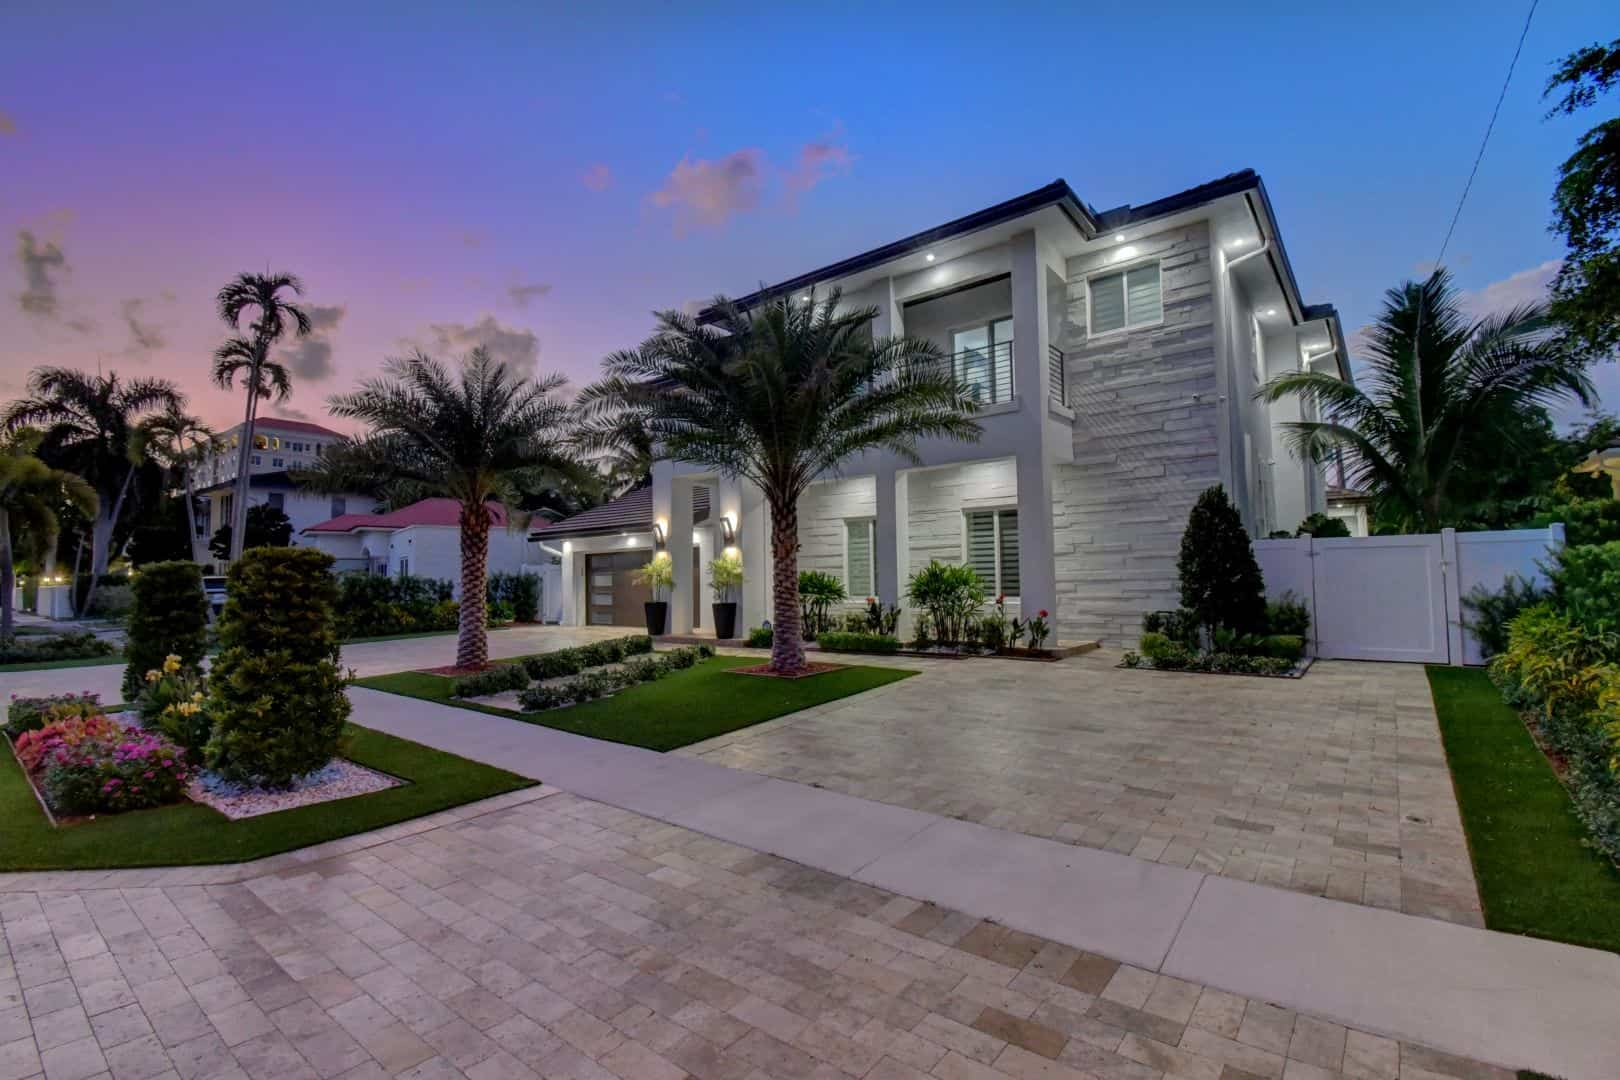 A luxurious two-story house with an attached garage and balconies that is an example of what our new construction opportunies in South Florida can offer you. Palm trees are in the front yard.